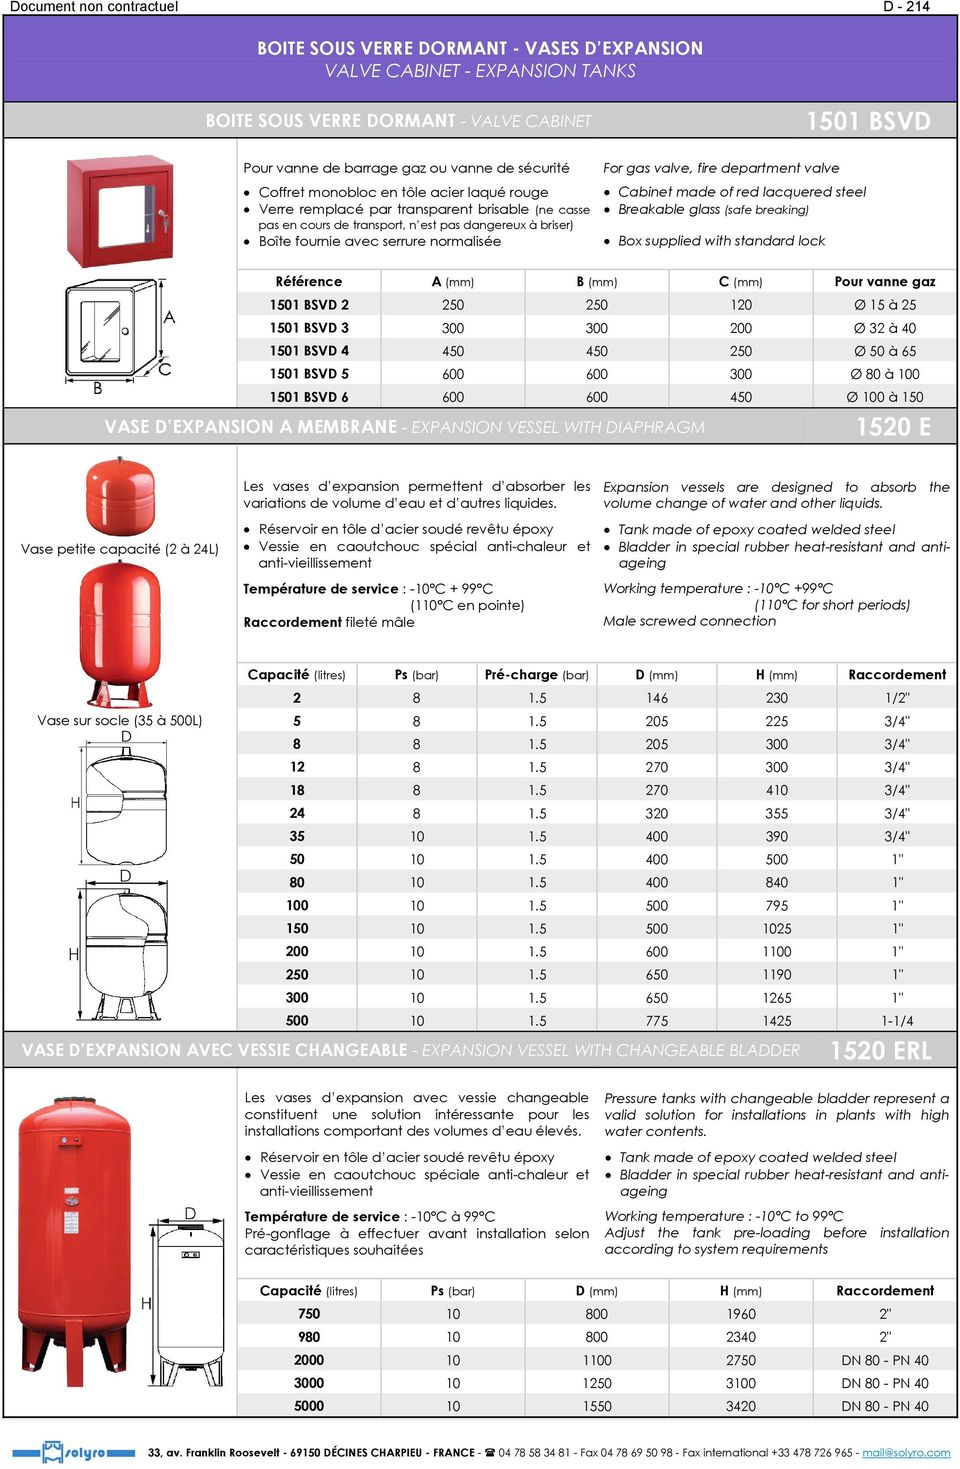 valve, fire department valve Cabinet made of red lacquered steel Breakable glass (safe breaking) Box supplied with standard lock Référence A (mm) B (mm) C (mm) Pour vanne gaz 1501 BSVD 2 250 250 120